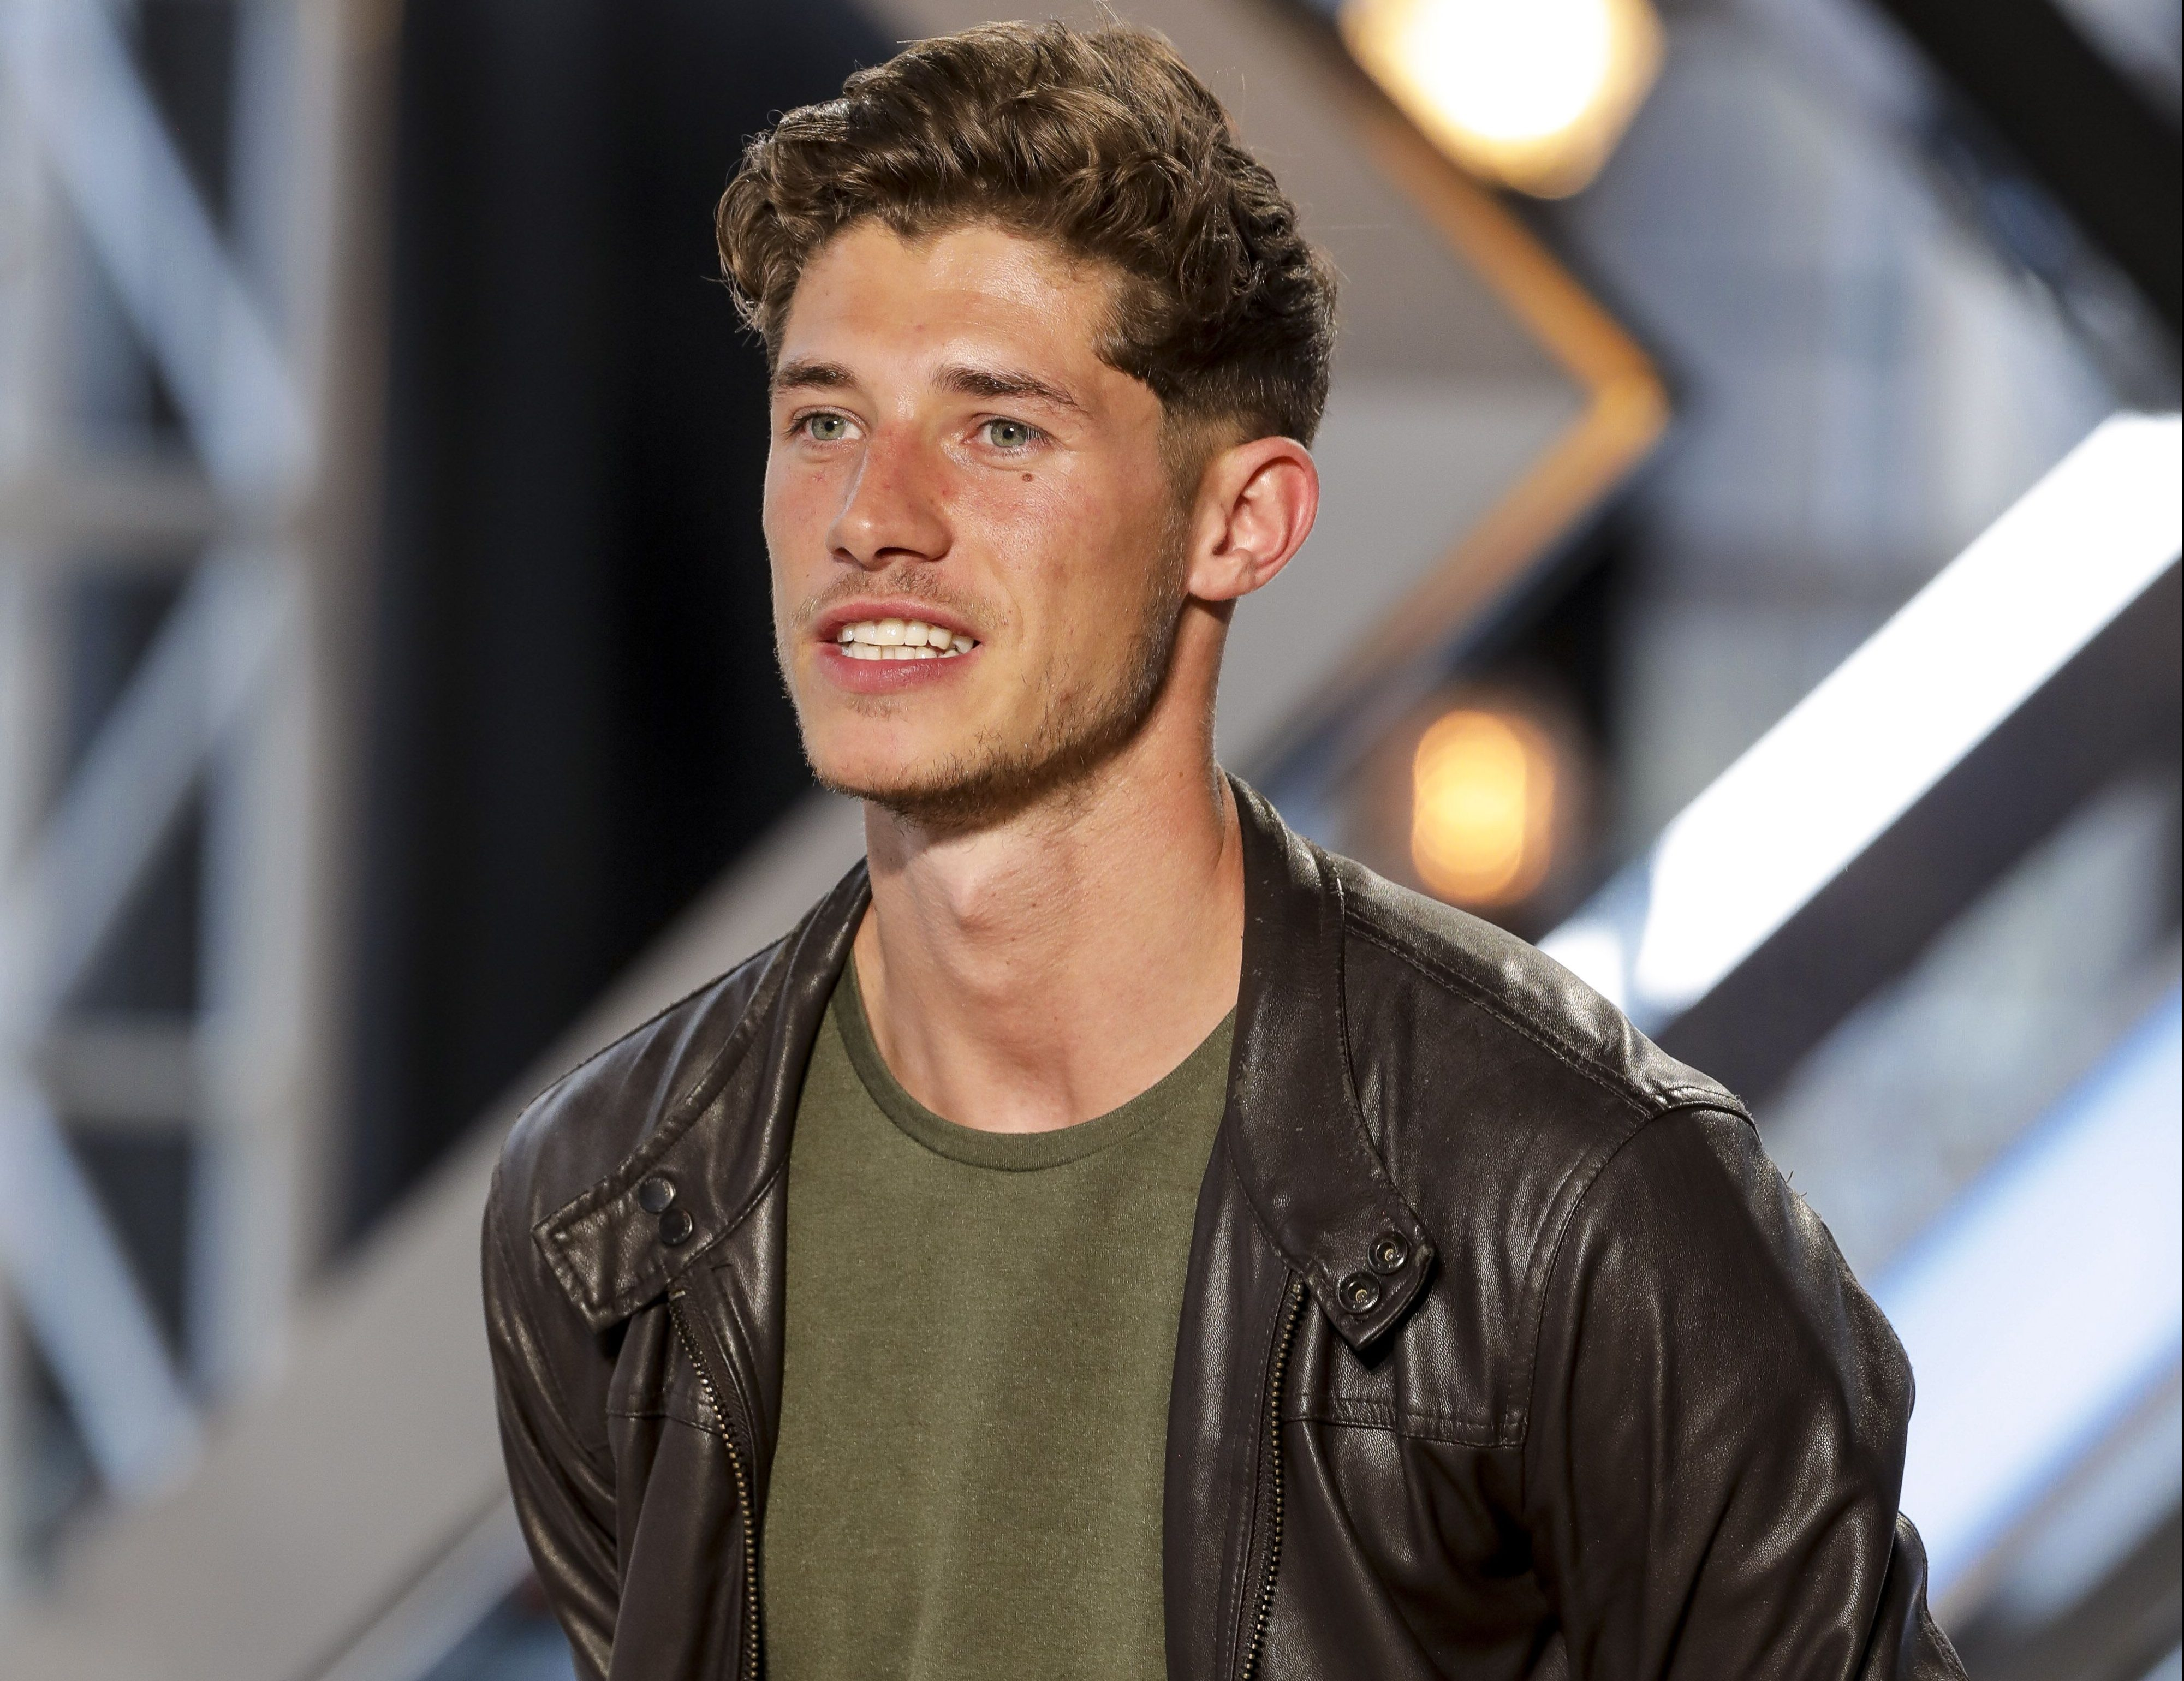 The X Factor's Sam Black only has £1.25 to his name after being booted from show